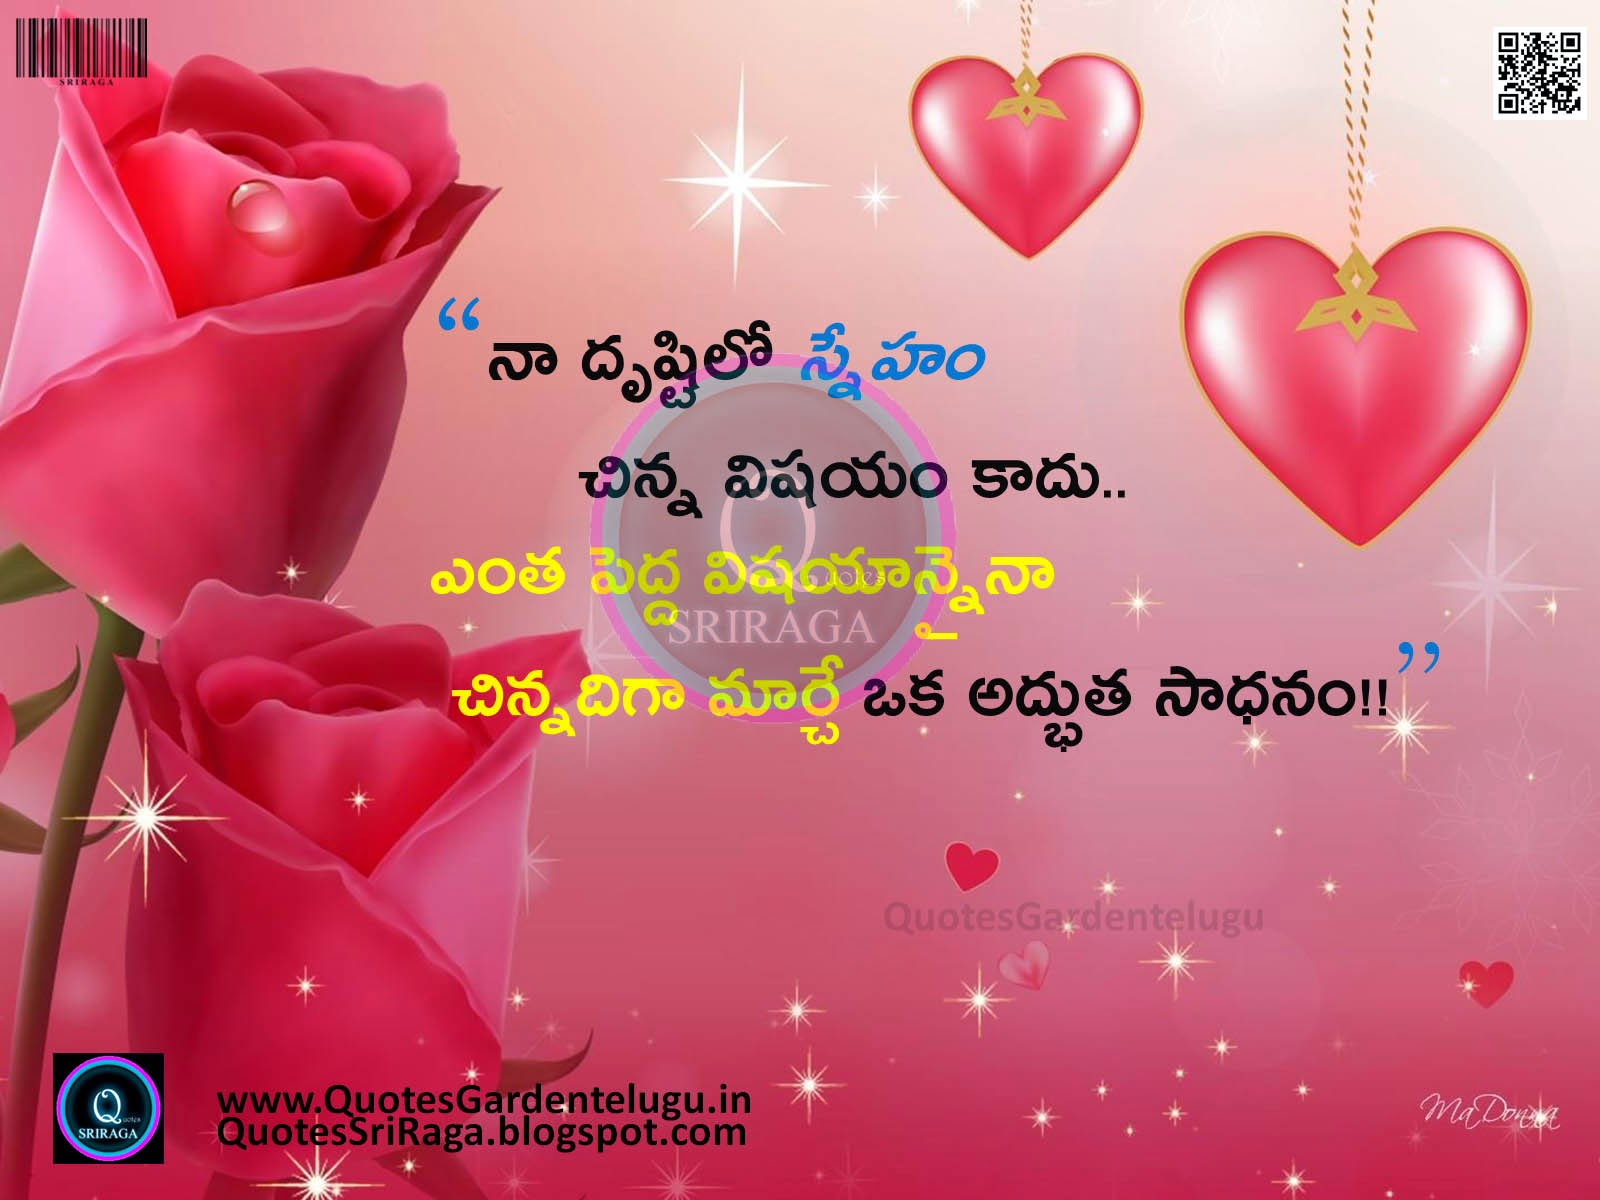 Friendship Quotes Top Telugu Friendship Quotes Friendship quotes Wallpapers with images